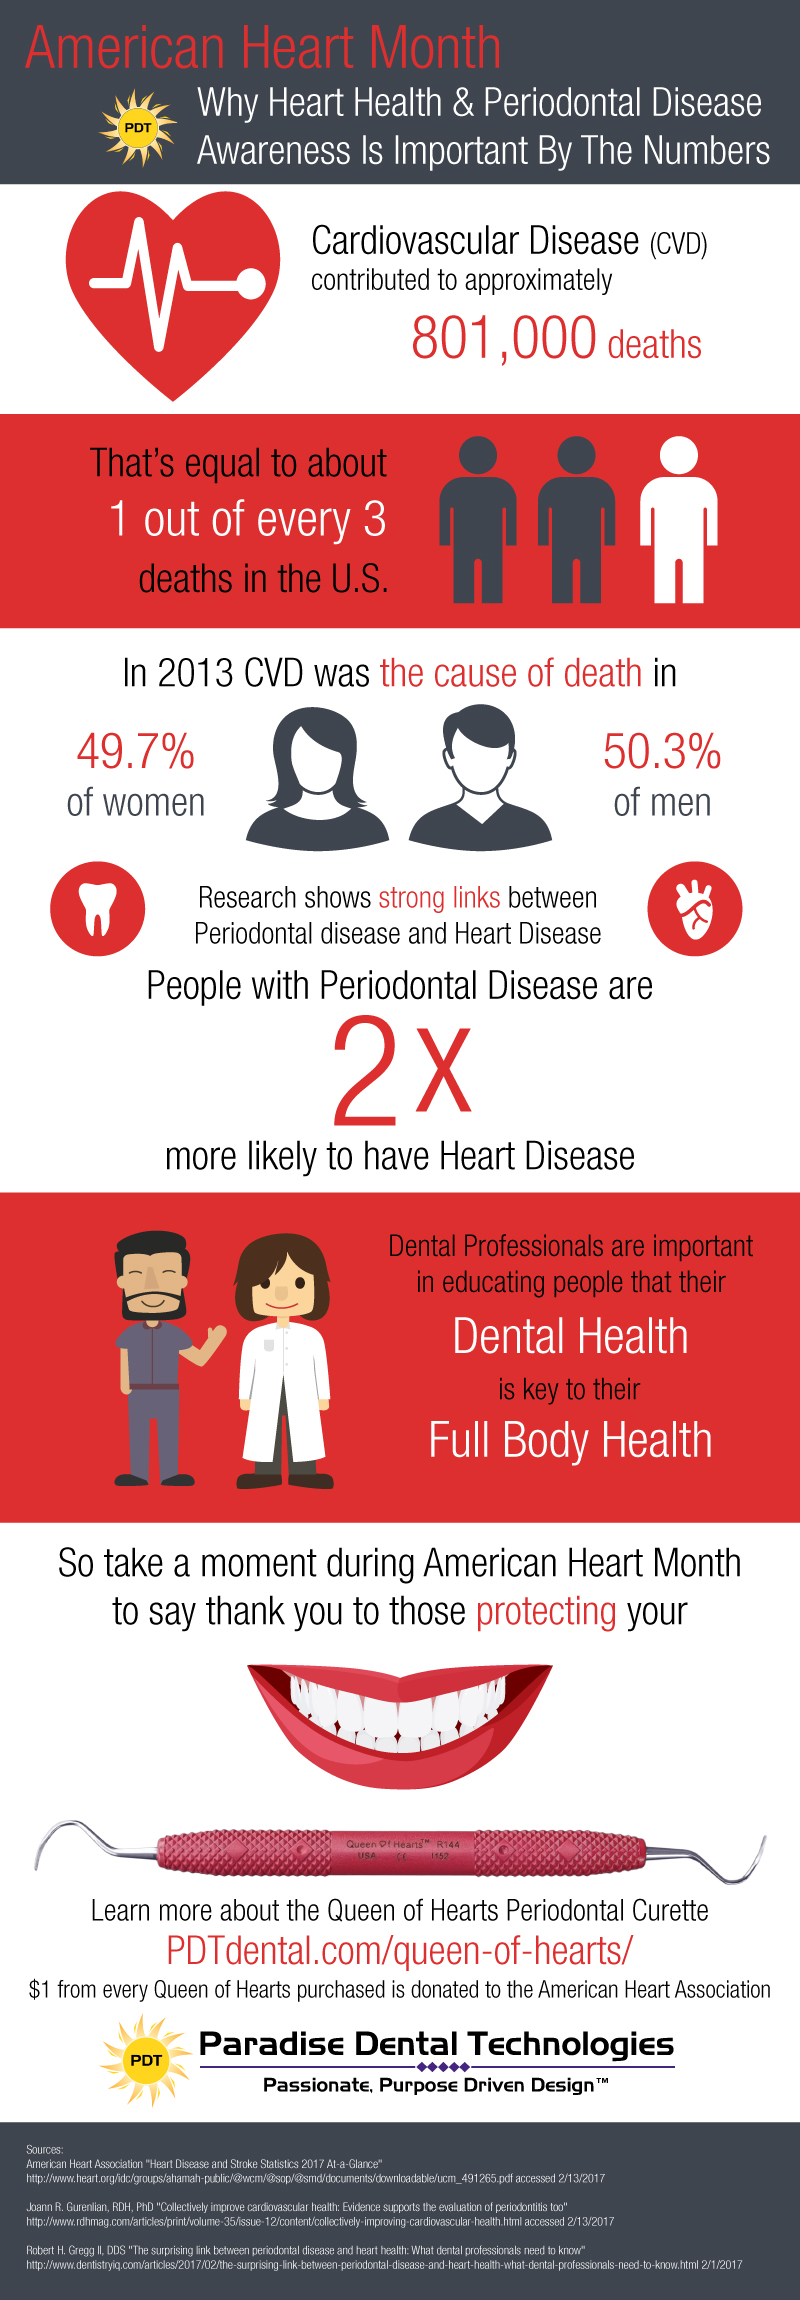 Heart Month Infographic